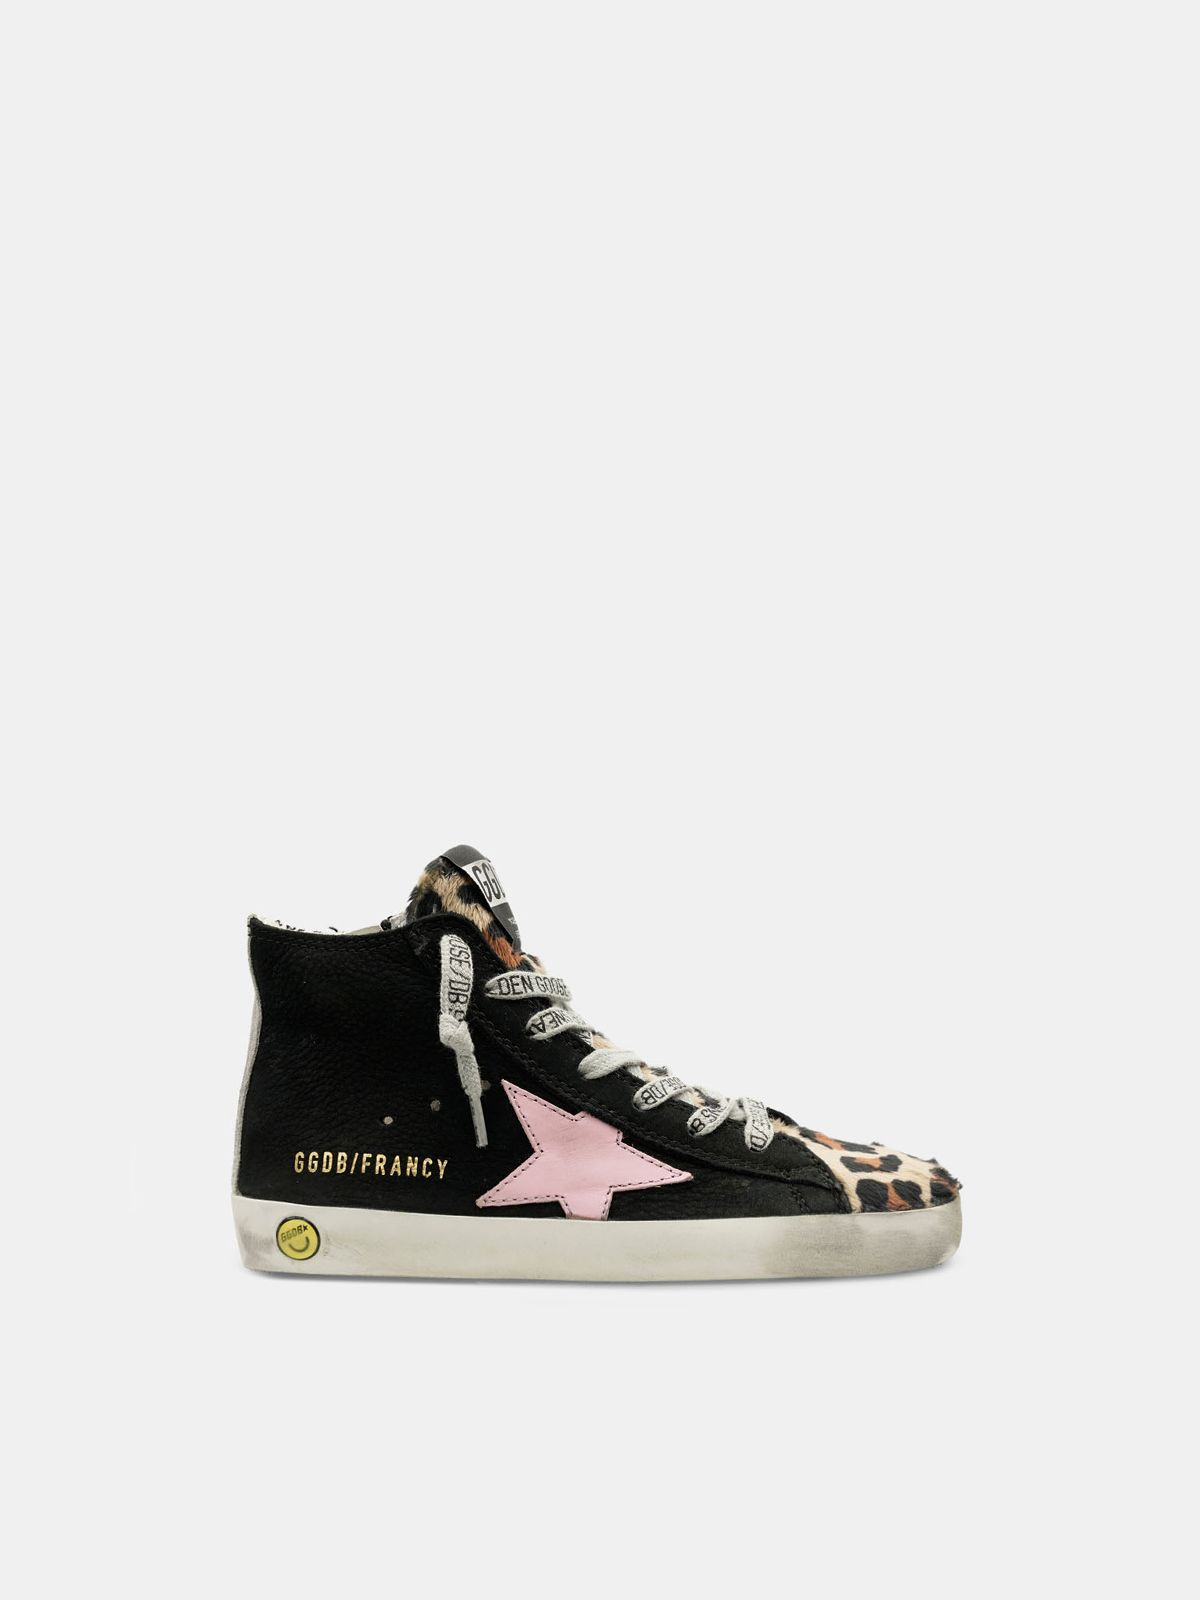 Golden Goose - Francy sneakers made of nubuck and pony skin with a leopard print. in